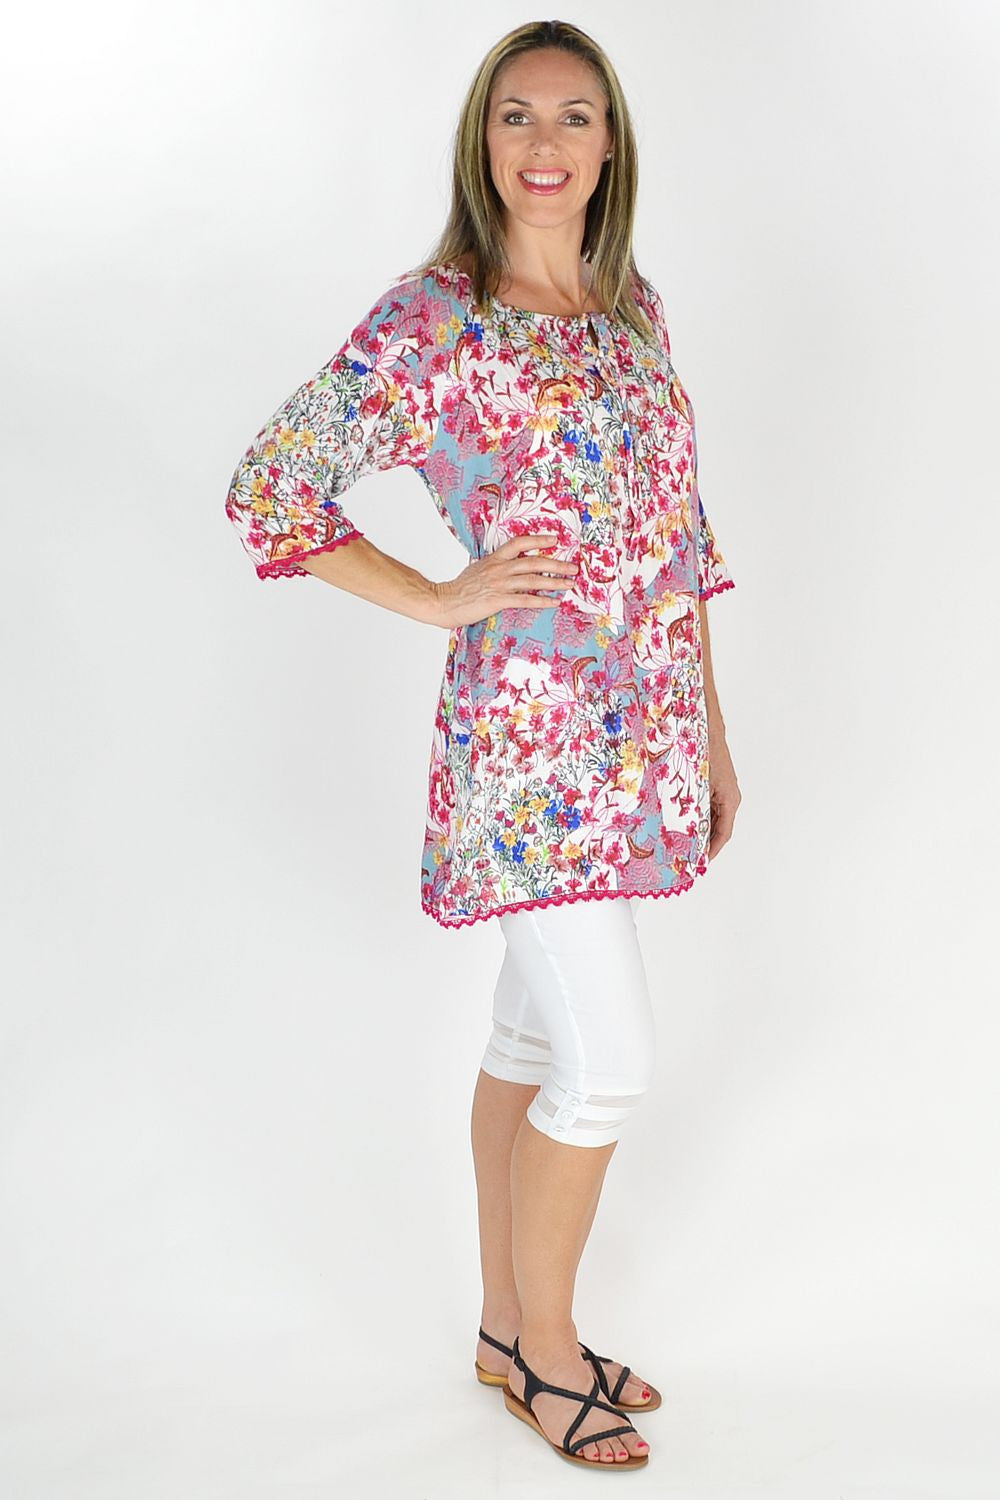 Wild Flower Tunic - at I Love Tunics @ www.ilovetunics.com = Number One! Tunics Destination